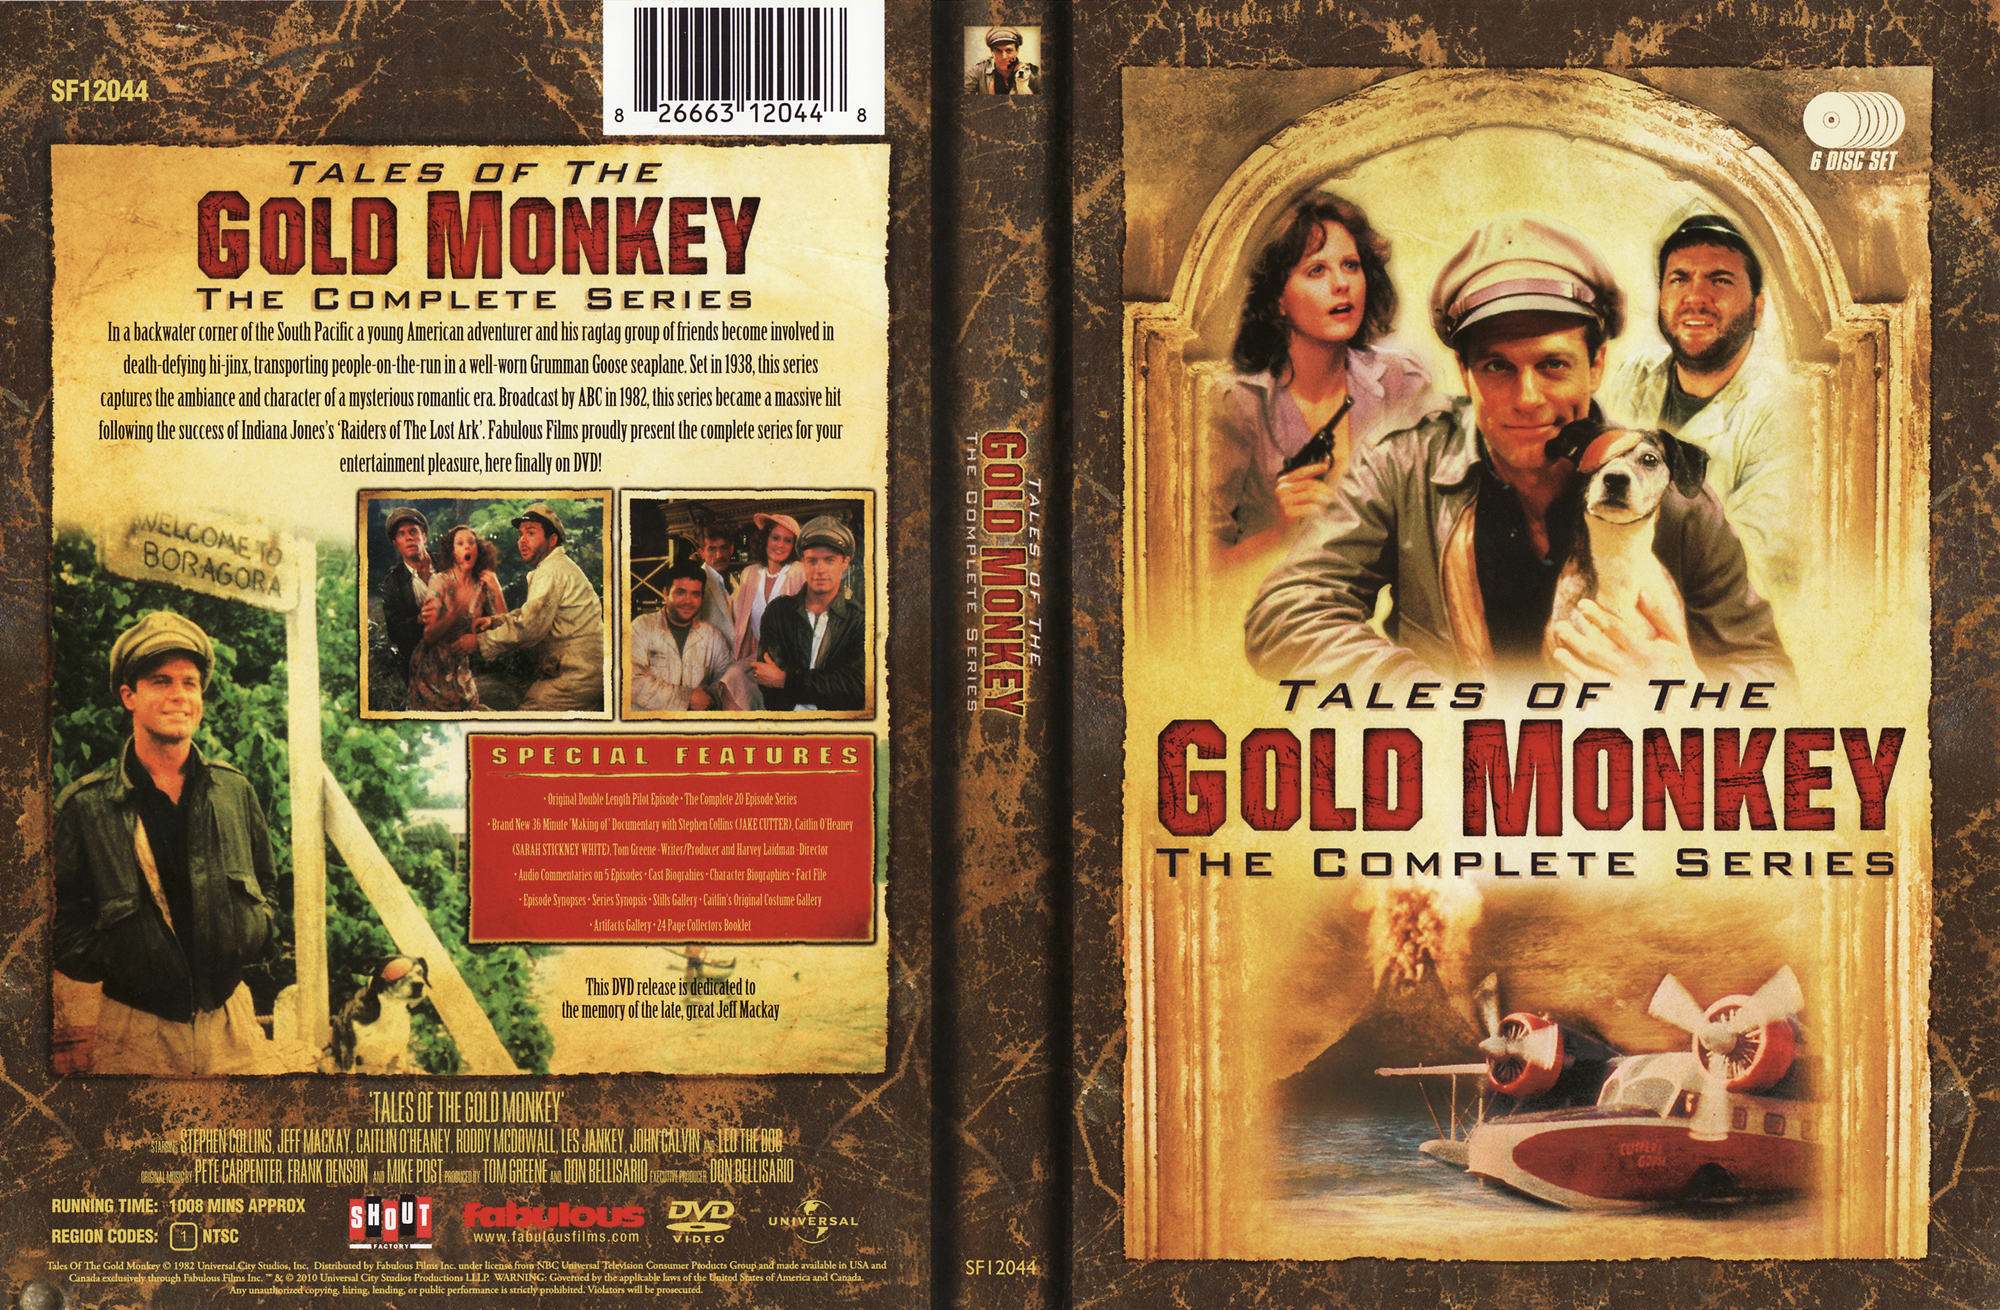 http://www.disneyfoto.estranky.cz/img/original/144/tales-of-the-golden-monkey--1982-.jpg